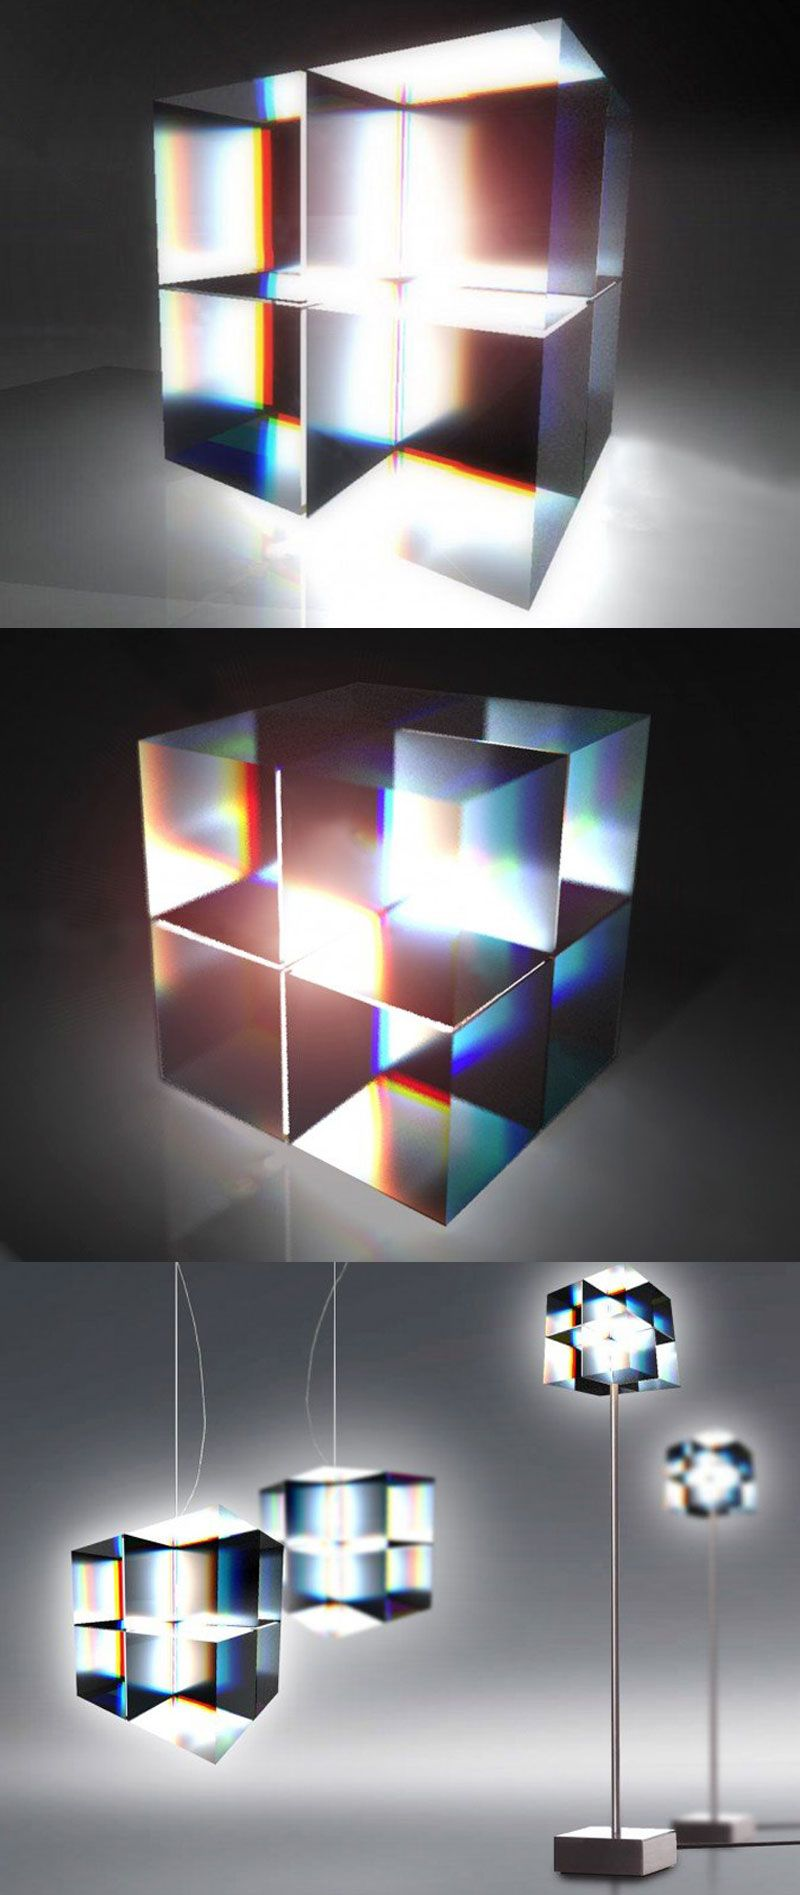 Cube Oled Lamp By Markus Fuerderer